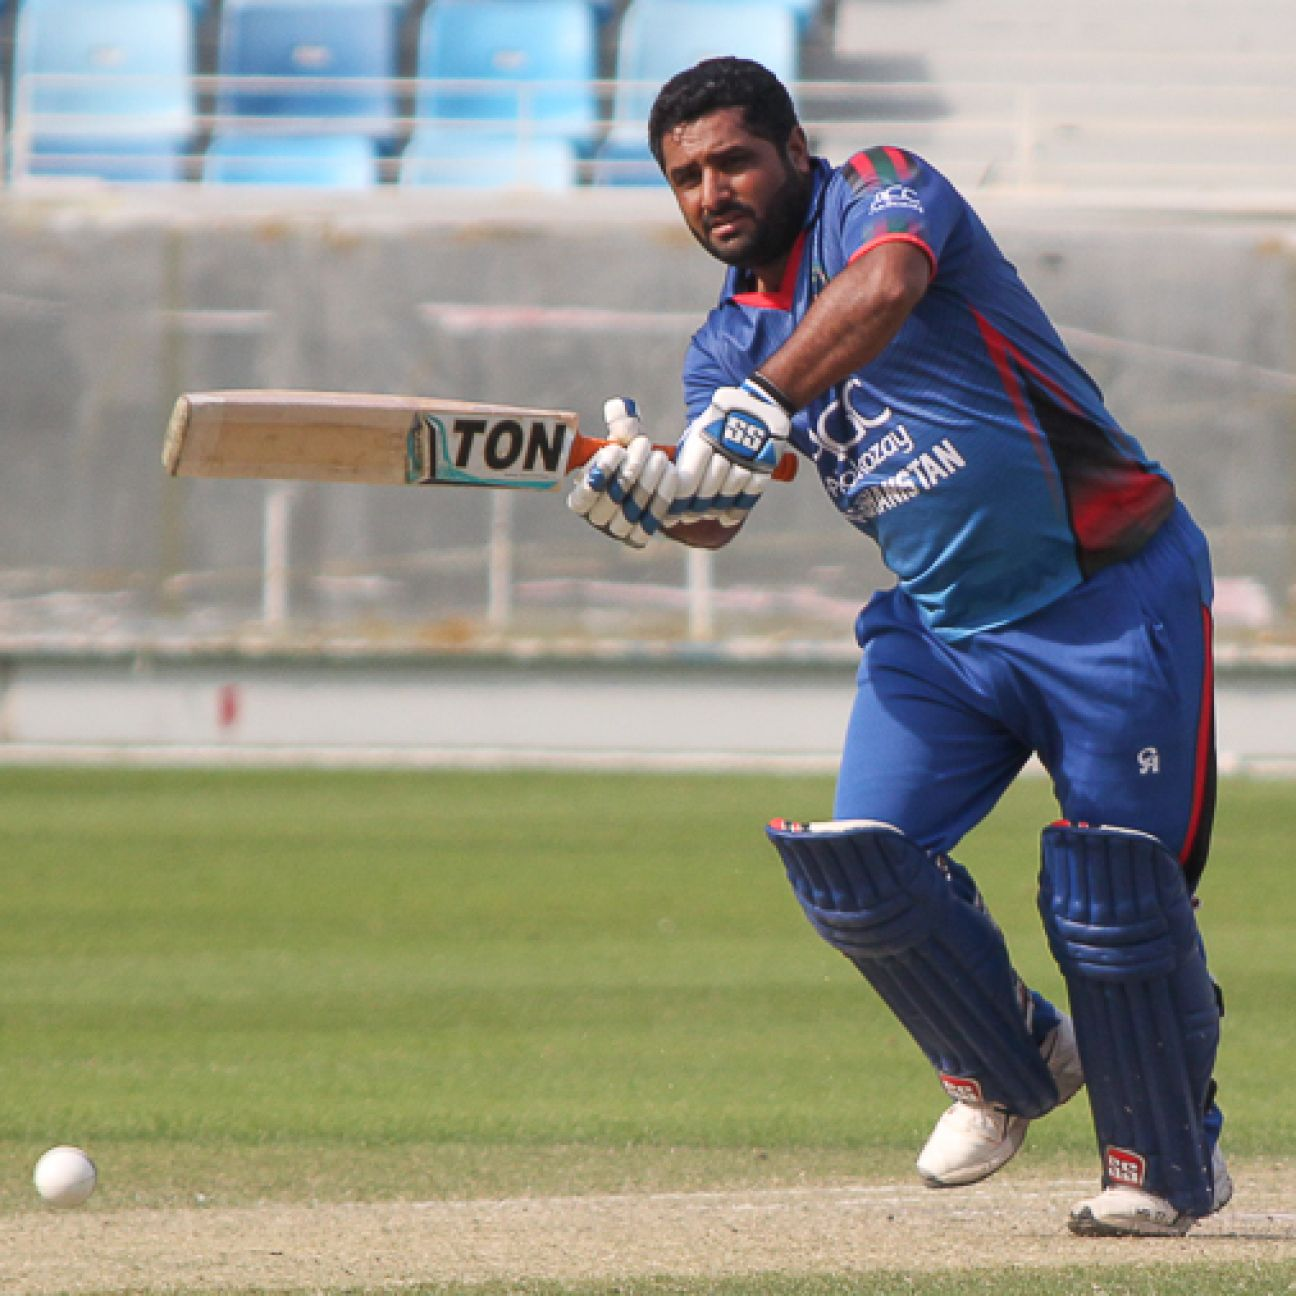 Mohammad Shahzad Receives One-year Ban For Doping Code